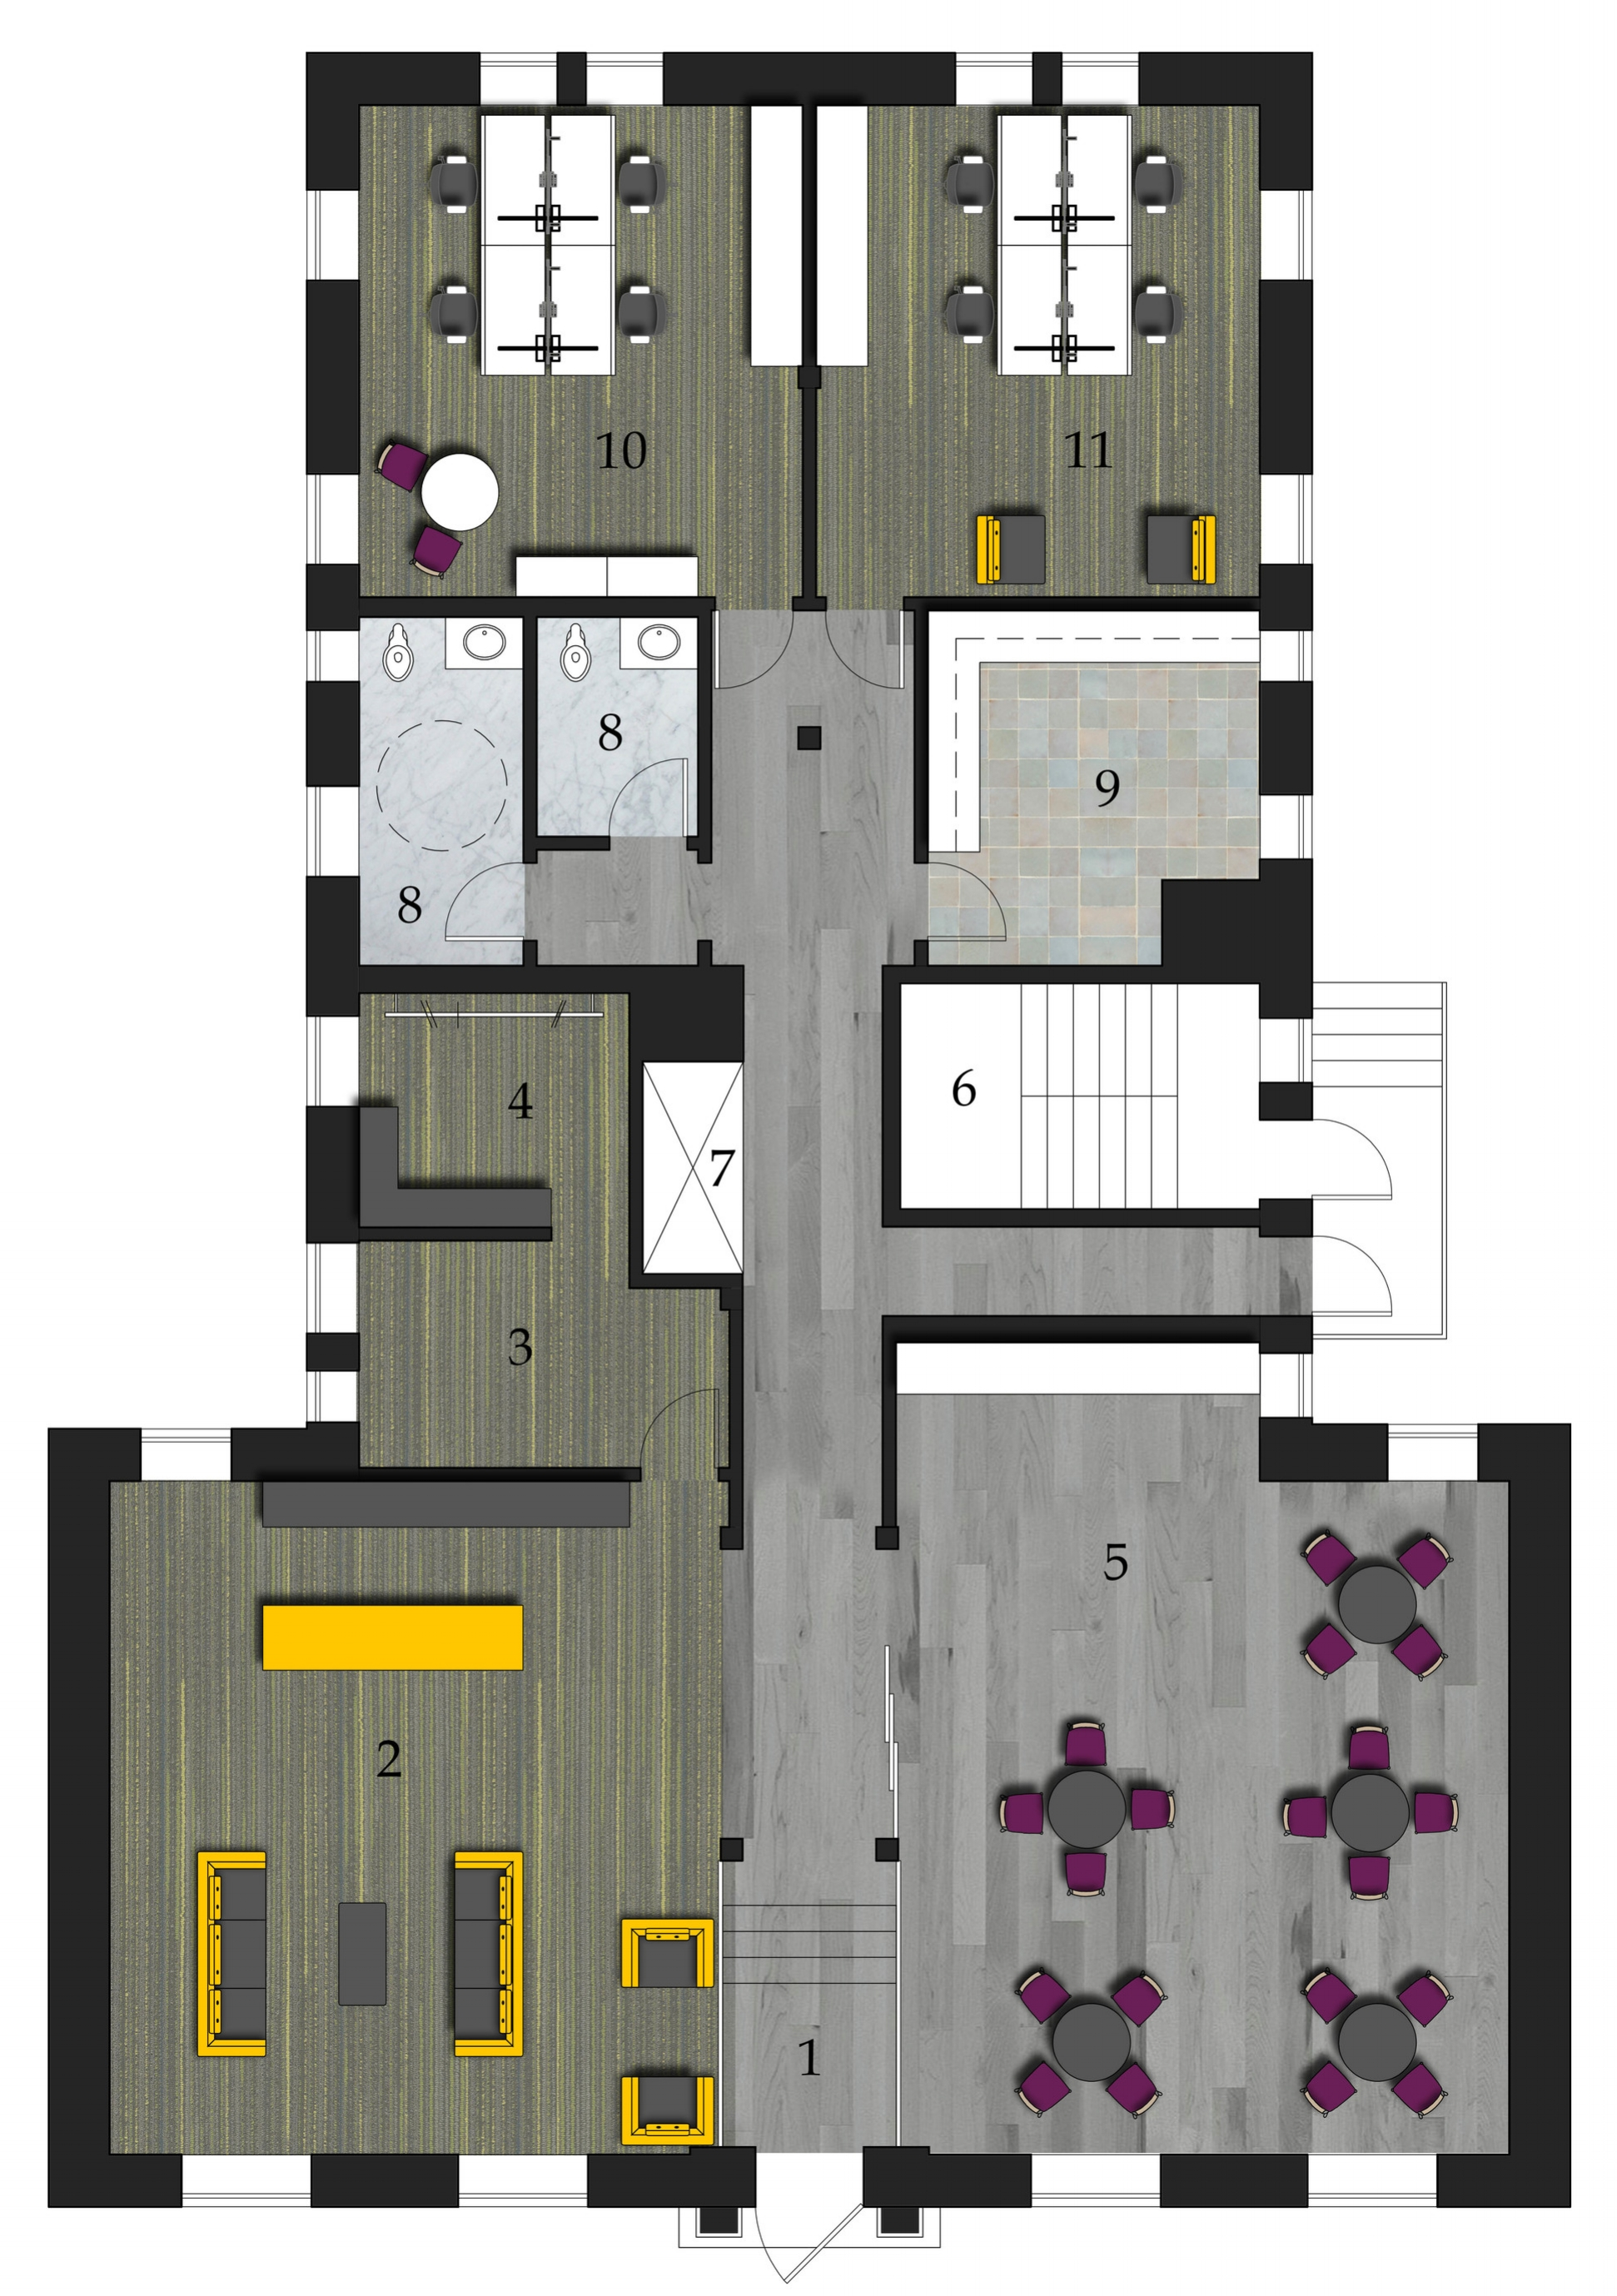 Ground Floor Plan   1.Entry 2.Reception 3.Luggage Storage4.Employee Locker Room 5.Breakfast Room and Casual Meeting Space 6.Emergency Stairs 7.Elevator 8.Restrooms 9.Kitchen 10.Hotel Office 11. Technology Center